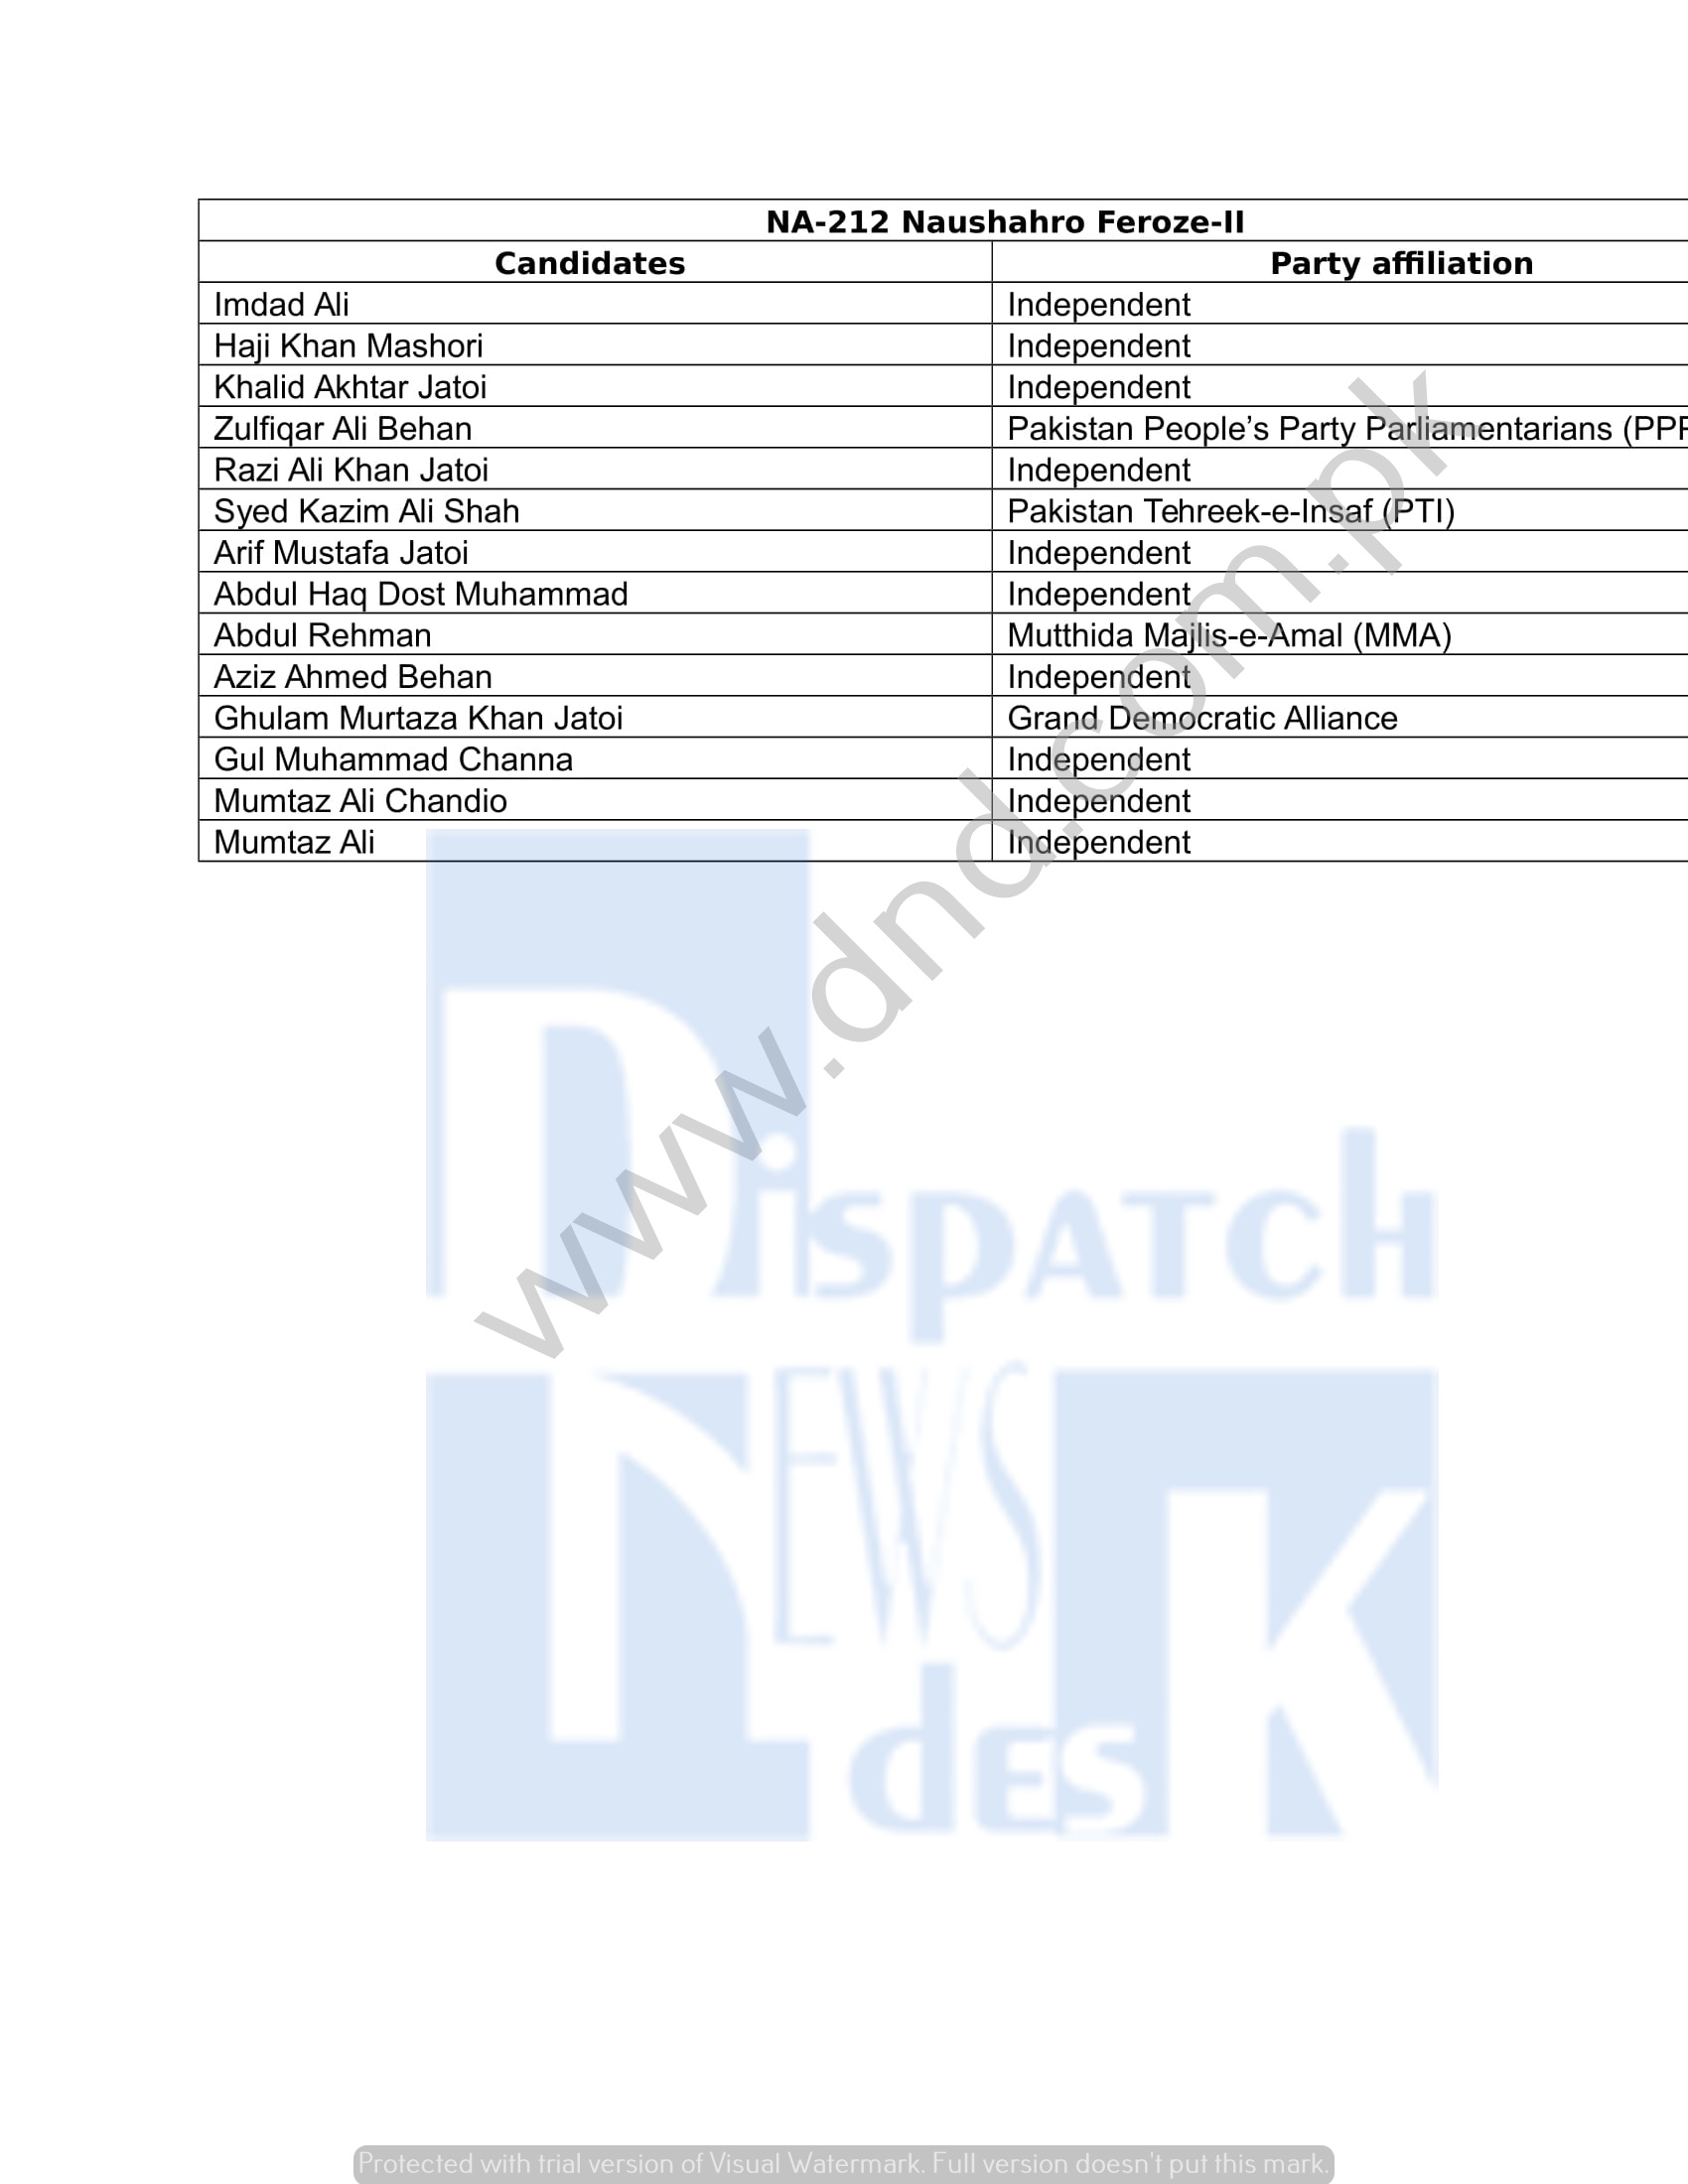 Complete List of All Candidates for Pakistan General Elections 2018